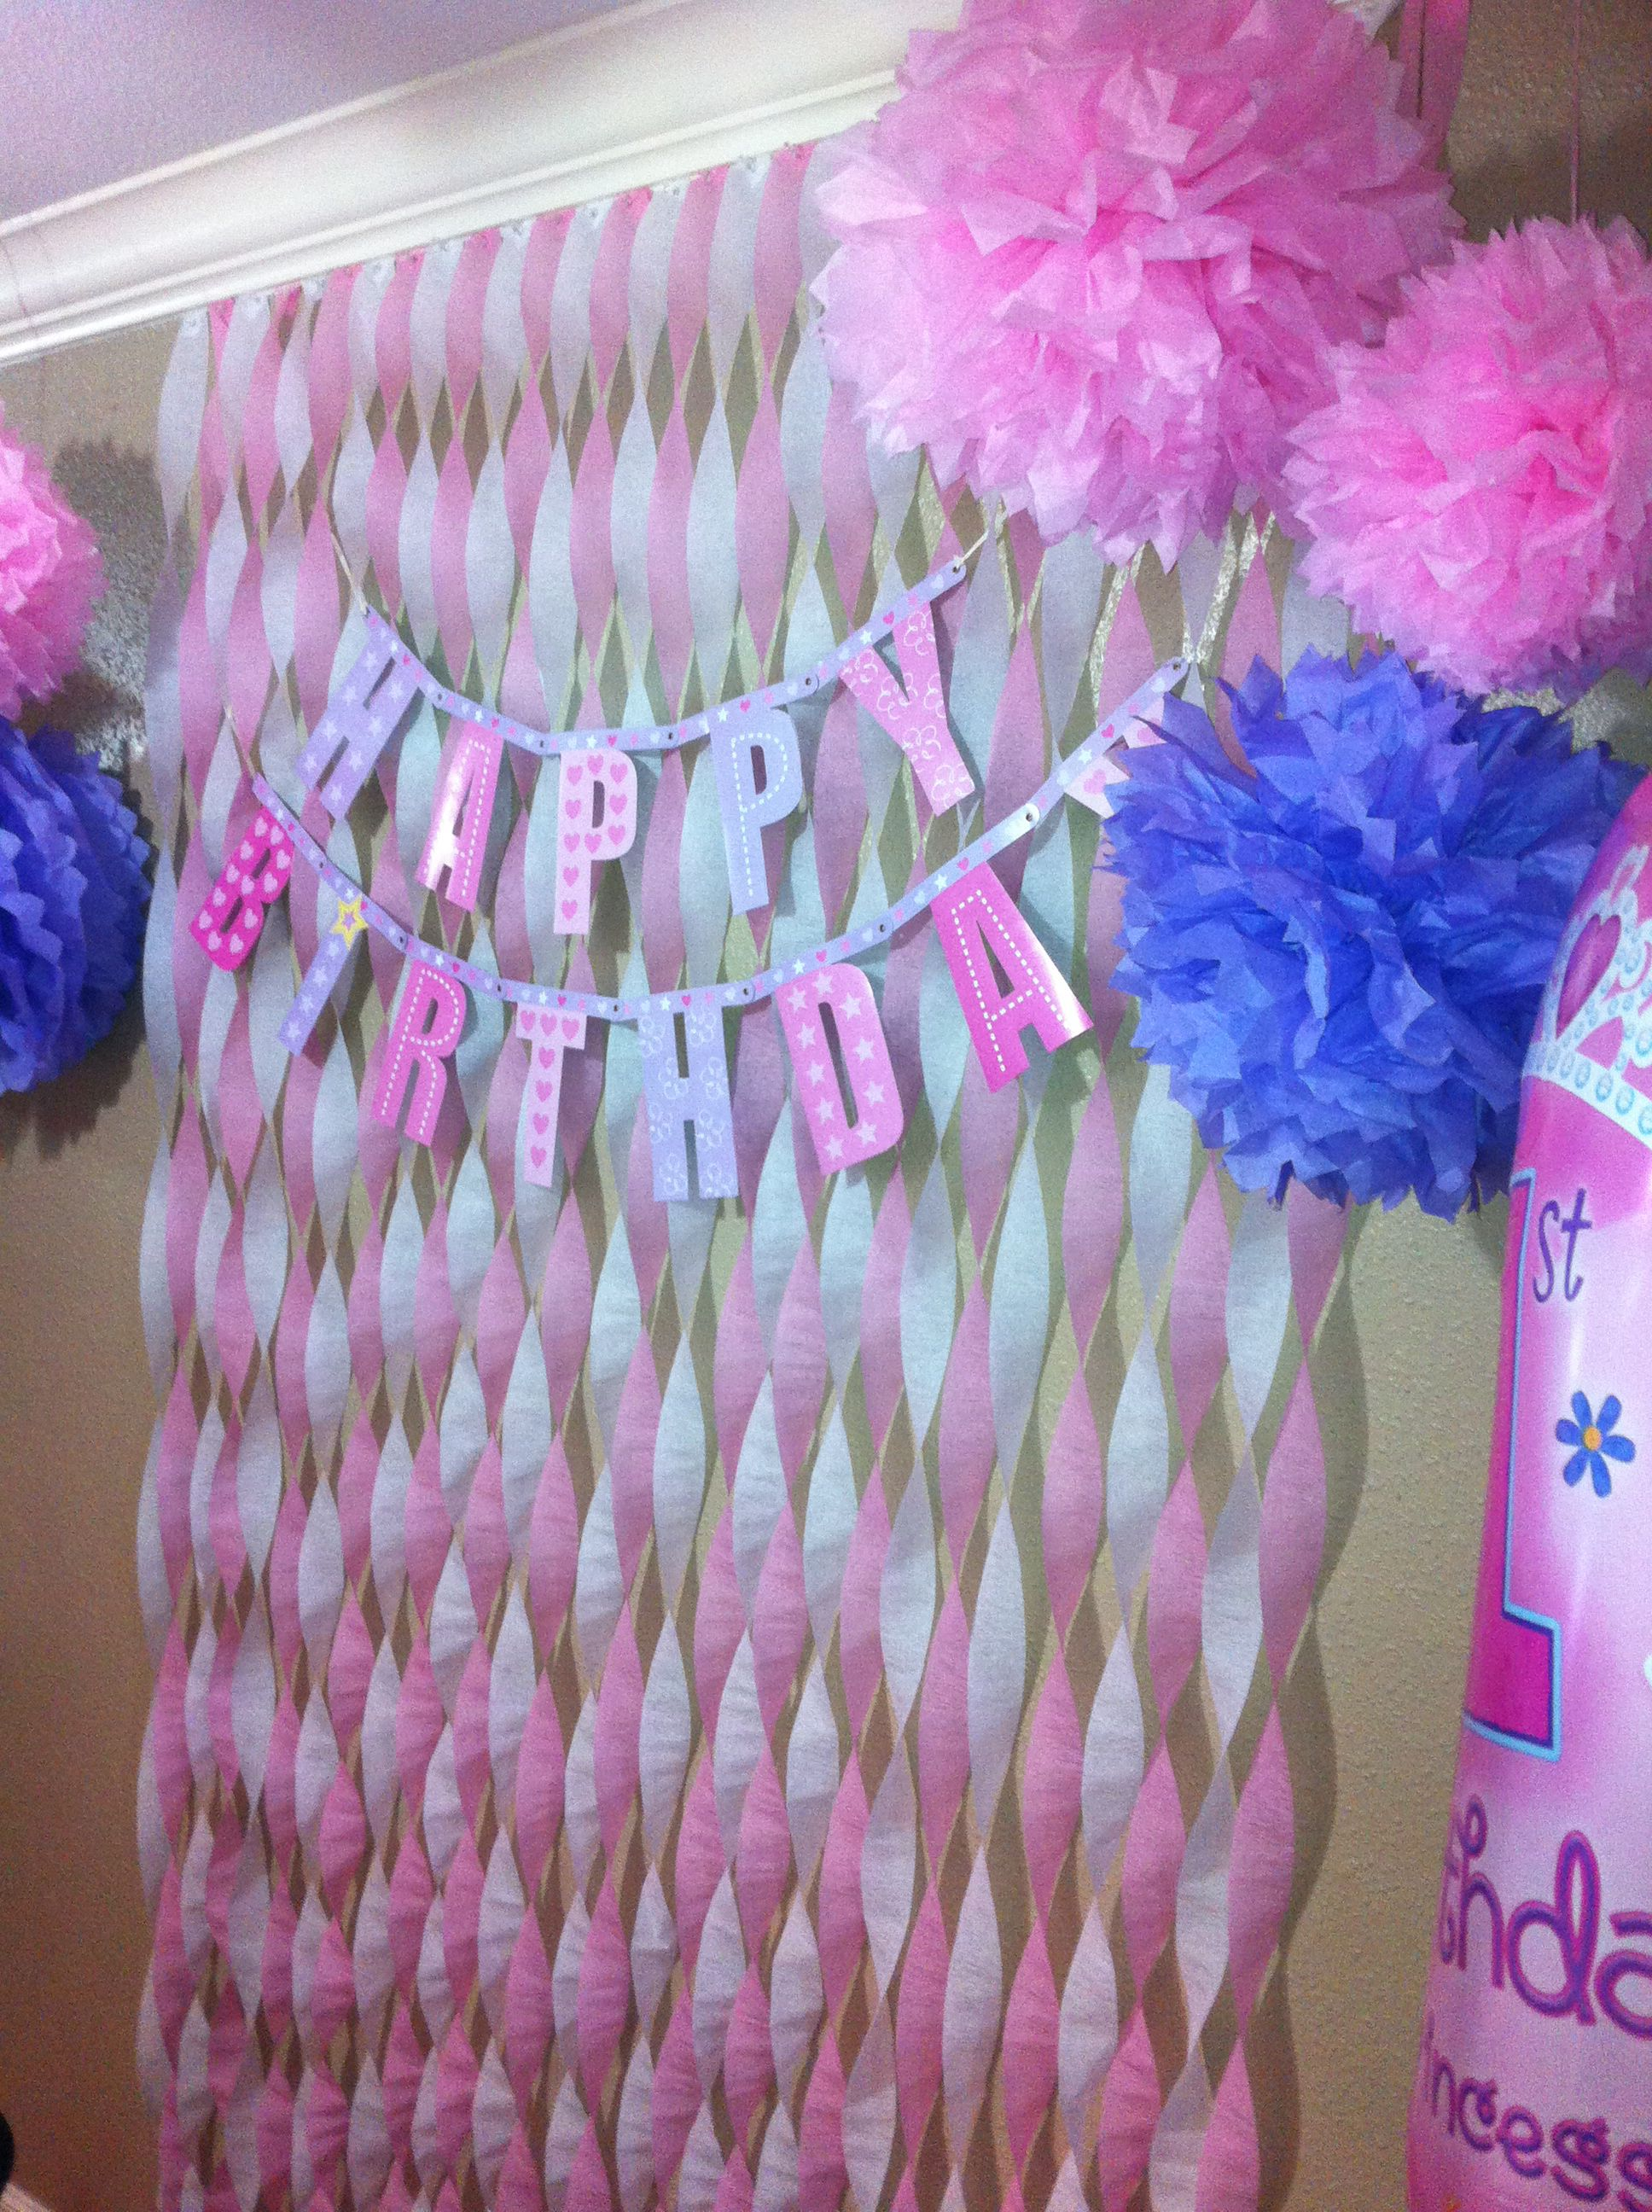 First Birthday Decor On A Budget For My Sophia Pink And Lavender Princess Party City Dollar Tree Streamers Tissue Paper Pom Poms